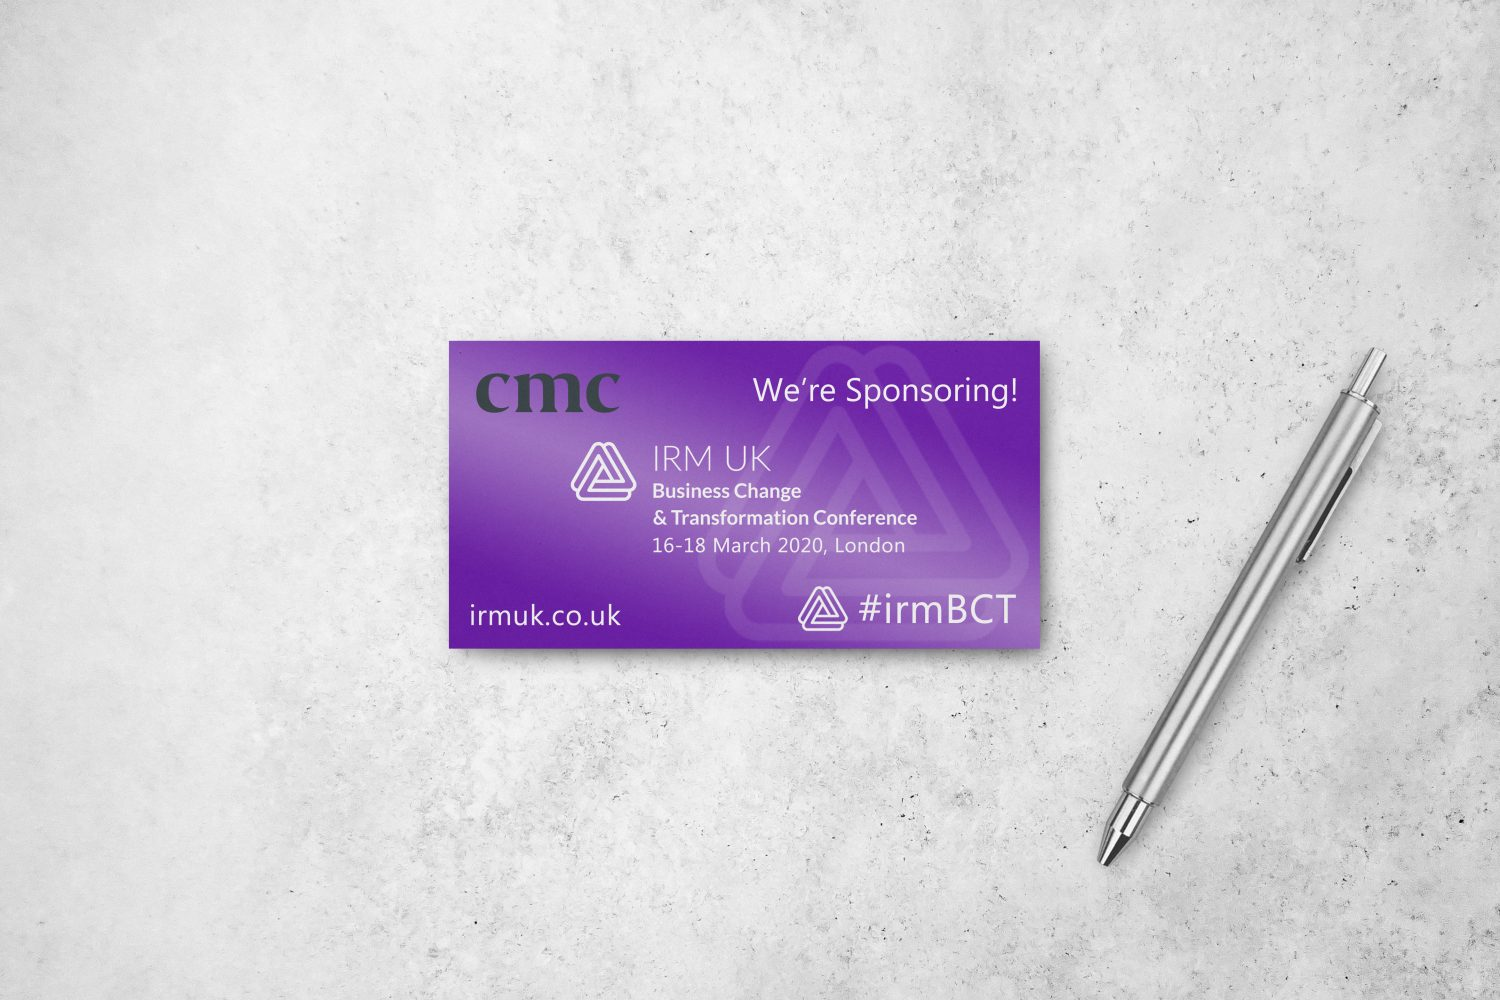 Banner publicising CMC's sponsorship of the IRM Business Change & Transformation Conference 2020